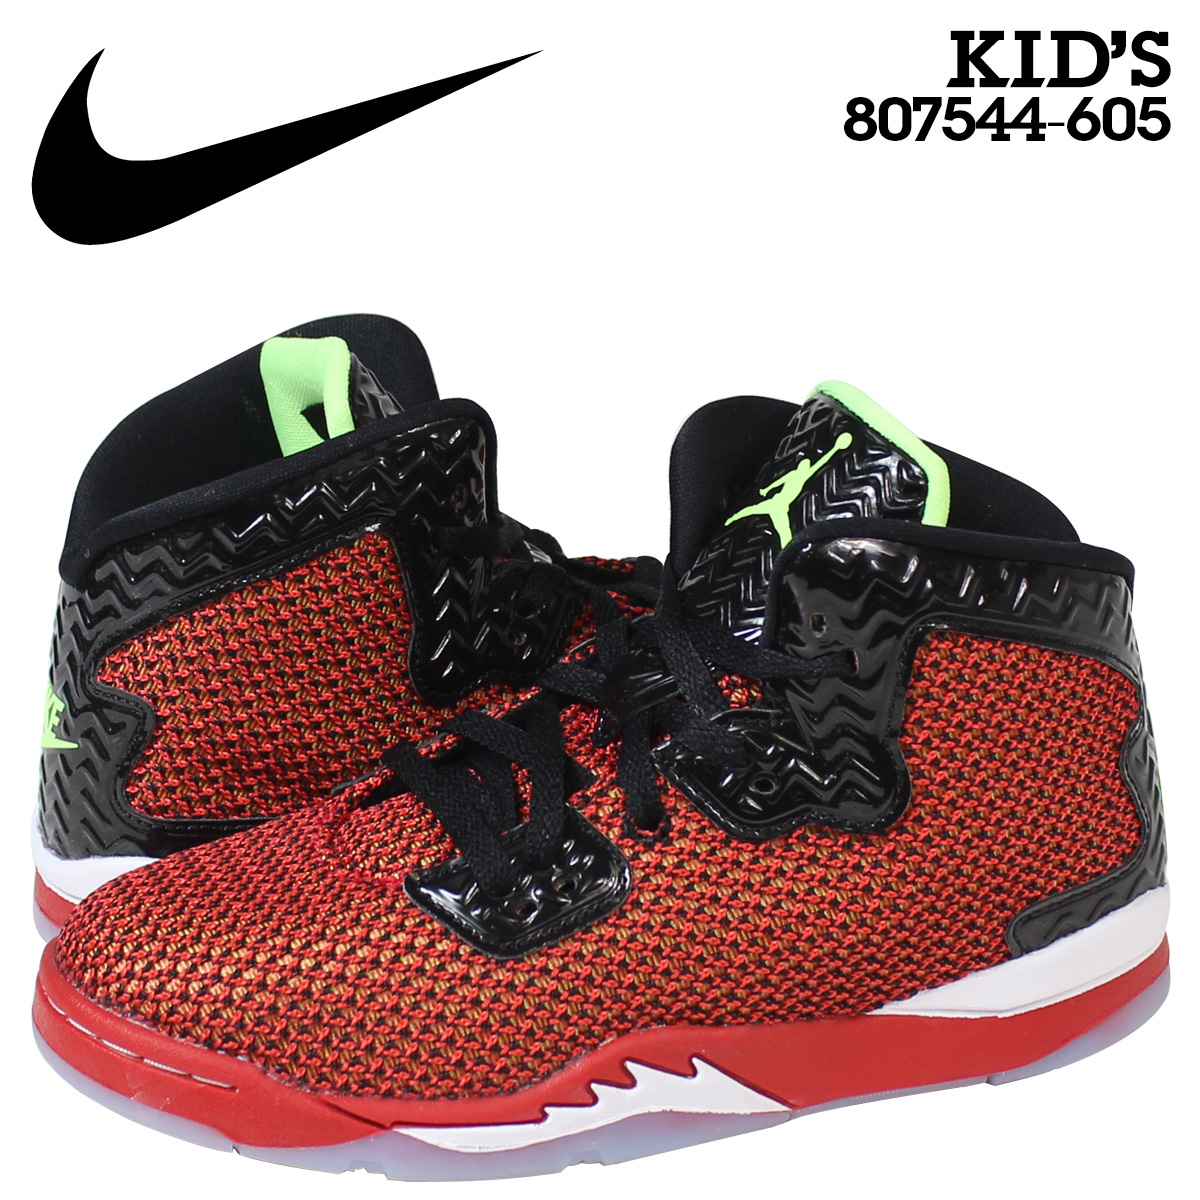 new product d4e6a 6b25d Nike NIKE Air Jordan sneakers kids AIR JORDAN SPIKE FORTY PS Air Jordan  spike 40 807544-605 red shoes